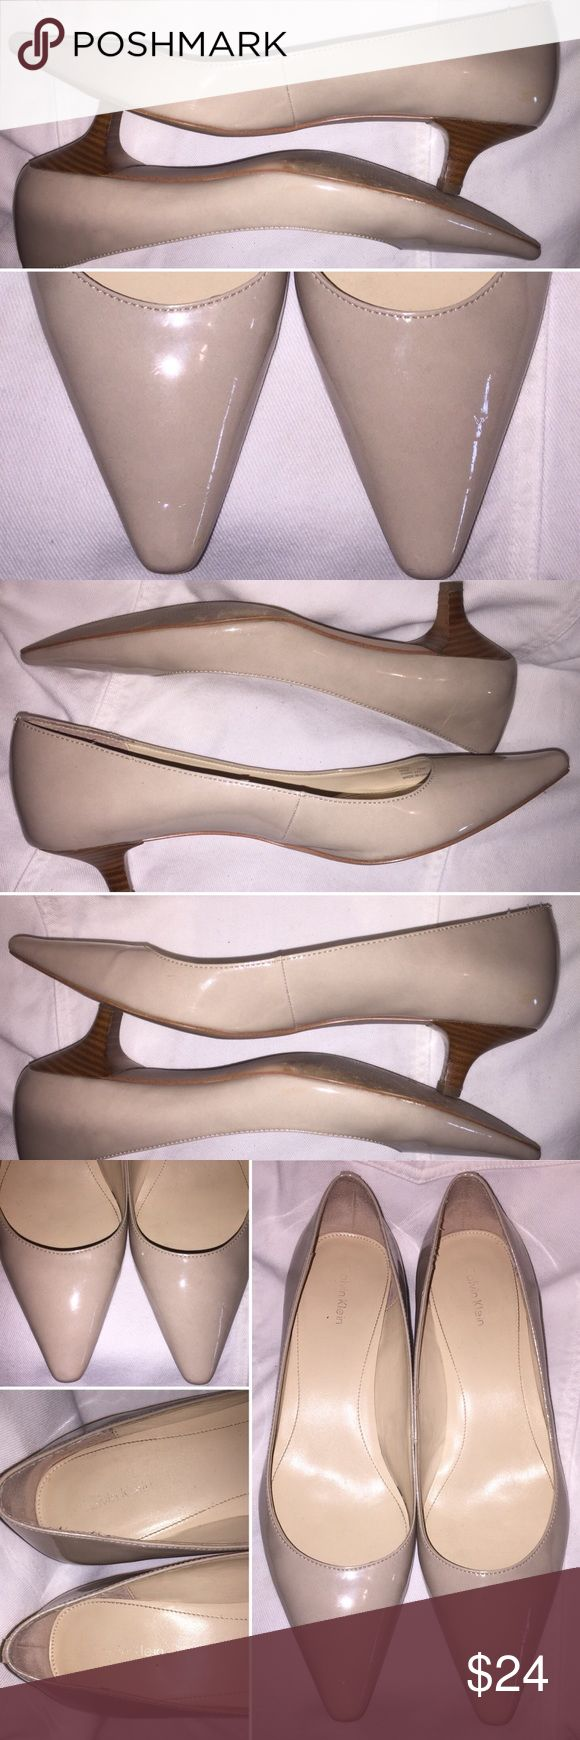 I just added this listing on Poshmark: Calvin Klein Nude Pointed Pump Kitten Heel Size 10. #shopmycloset #poshmark #fashion #shopping #style #forsale #Calvin Klein #Shoes